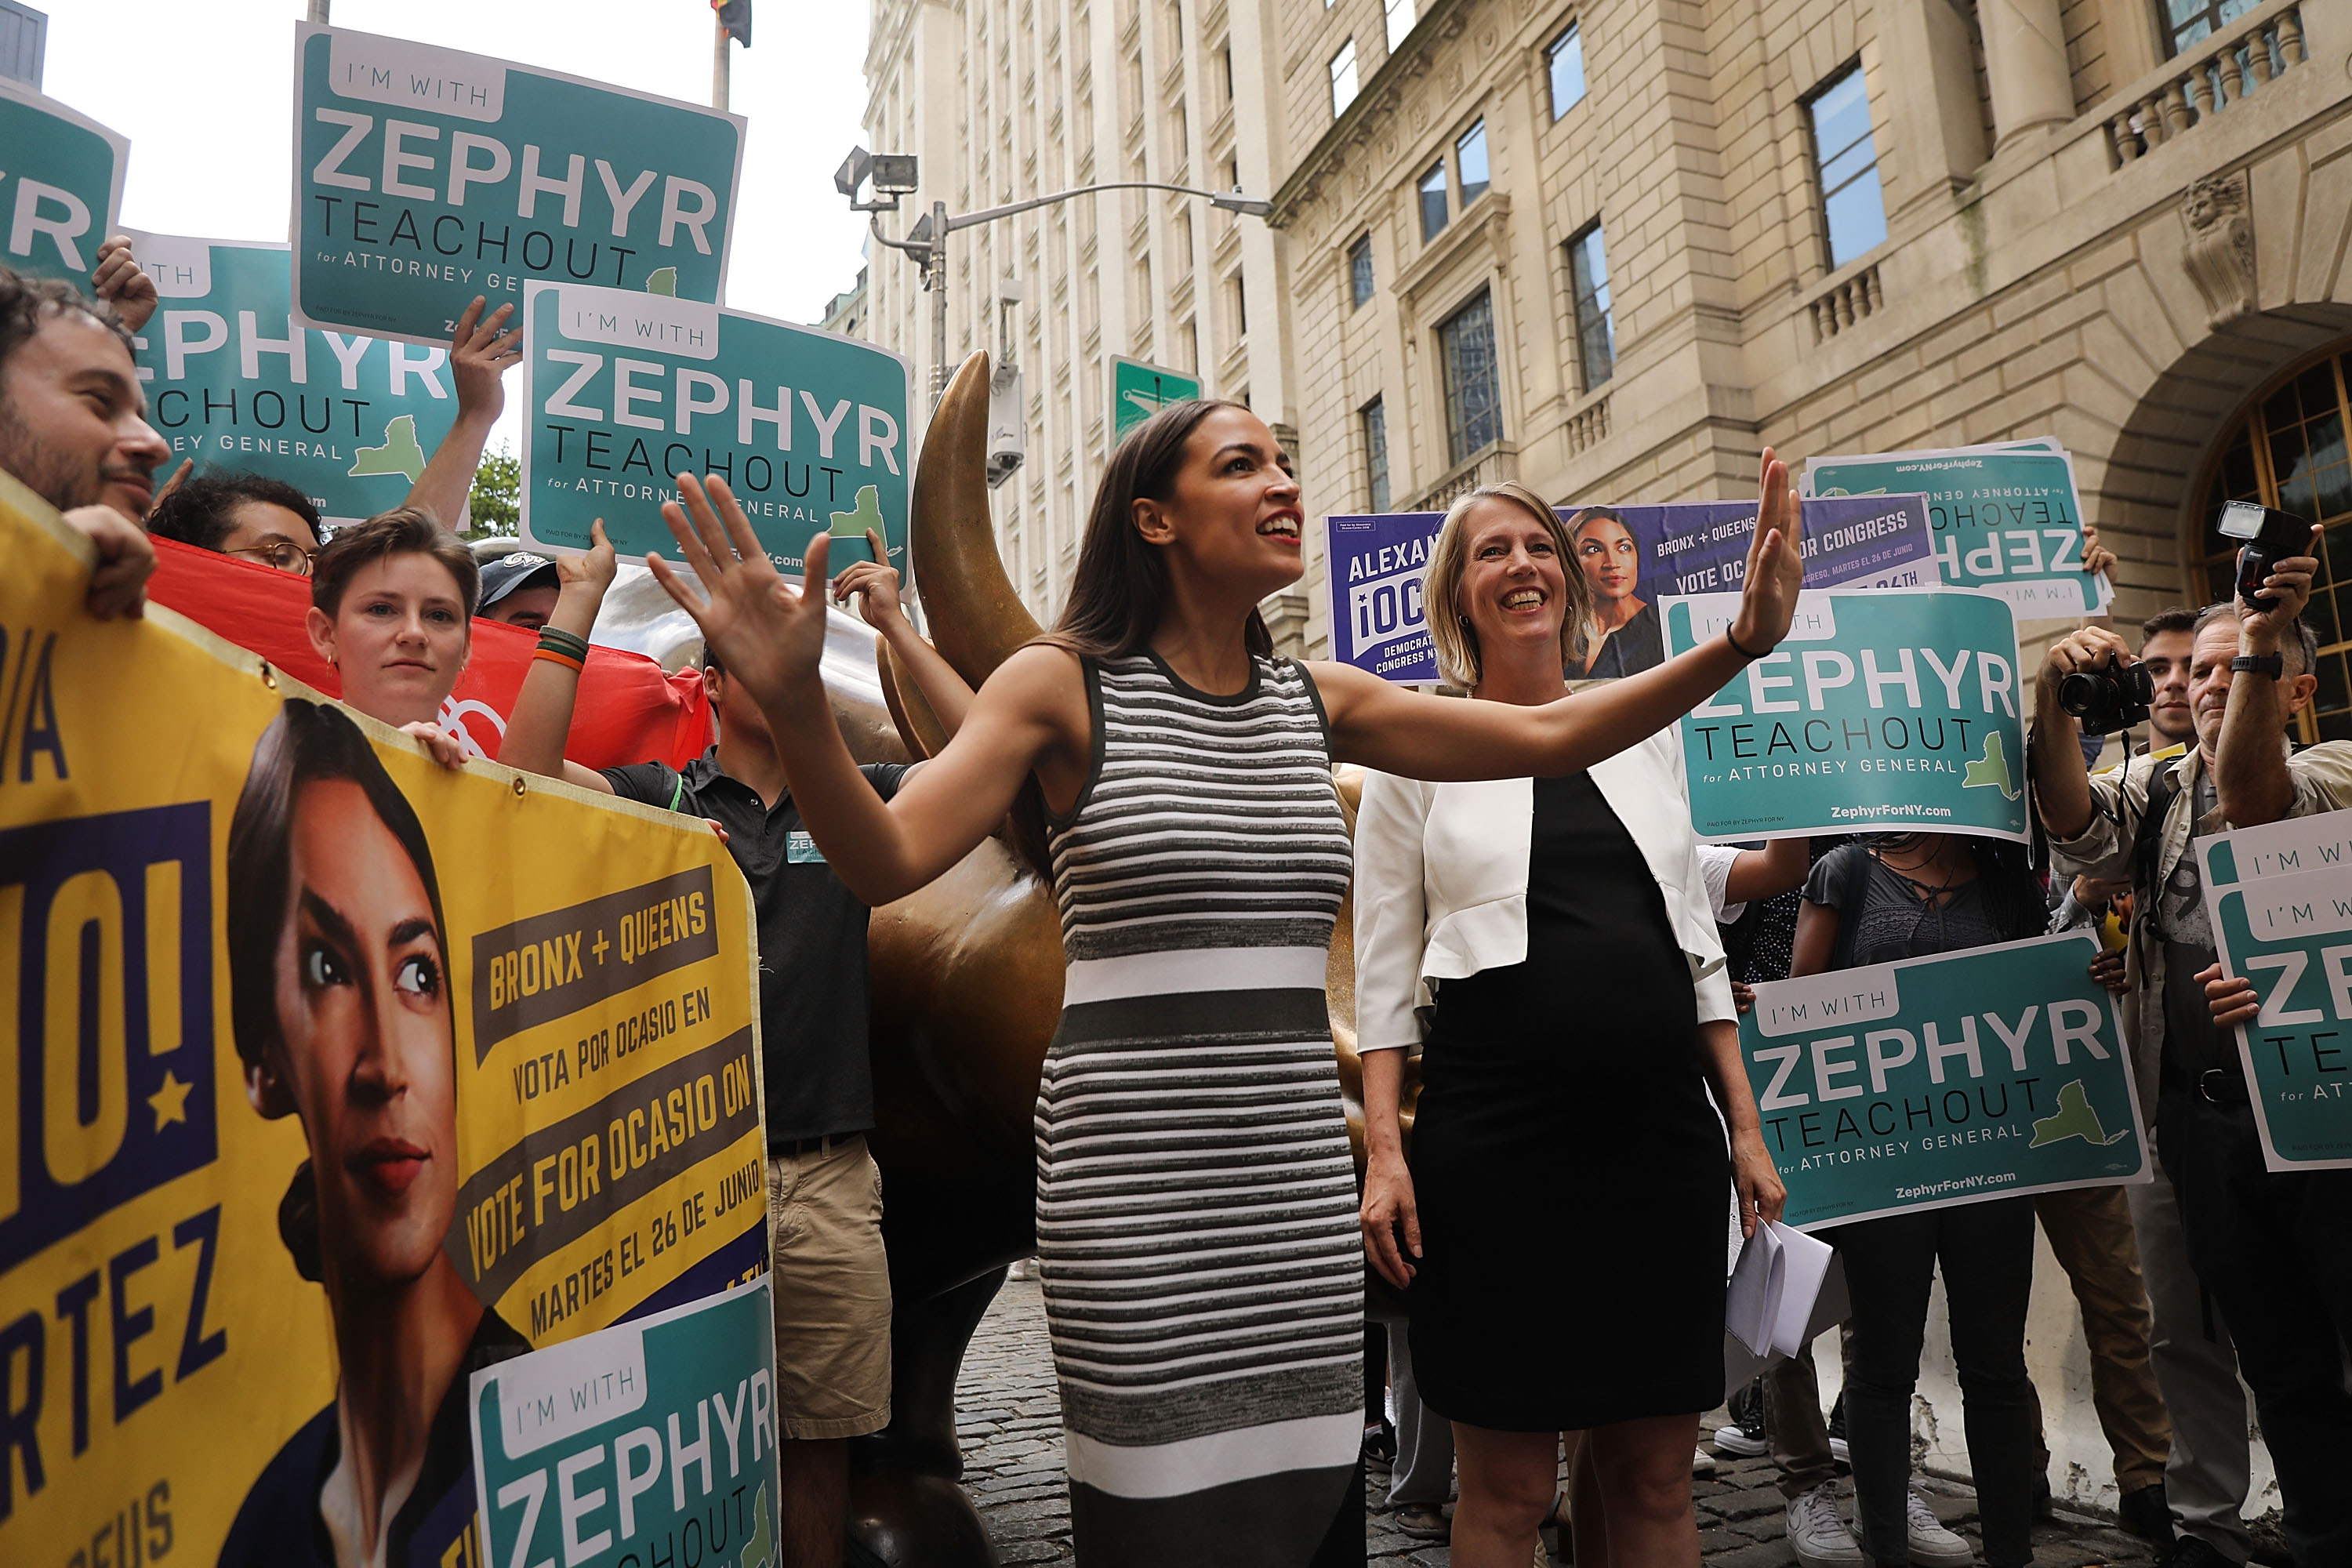 Congressional nominee Alexandria Ocasio-Cortez (L) stands with Zephyr Teachout after endorsing her for New York City Public Advocate on July 12, 2018 in New York City.